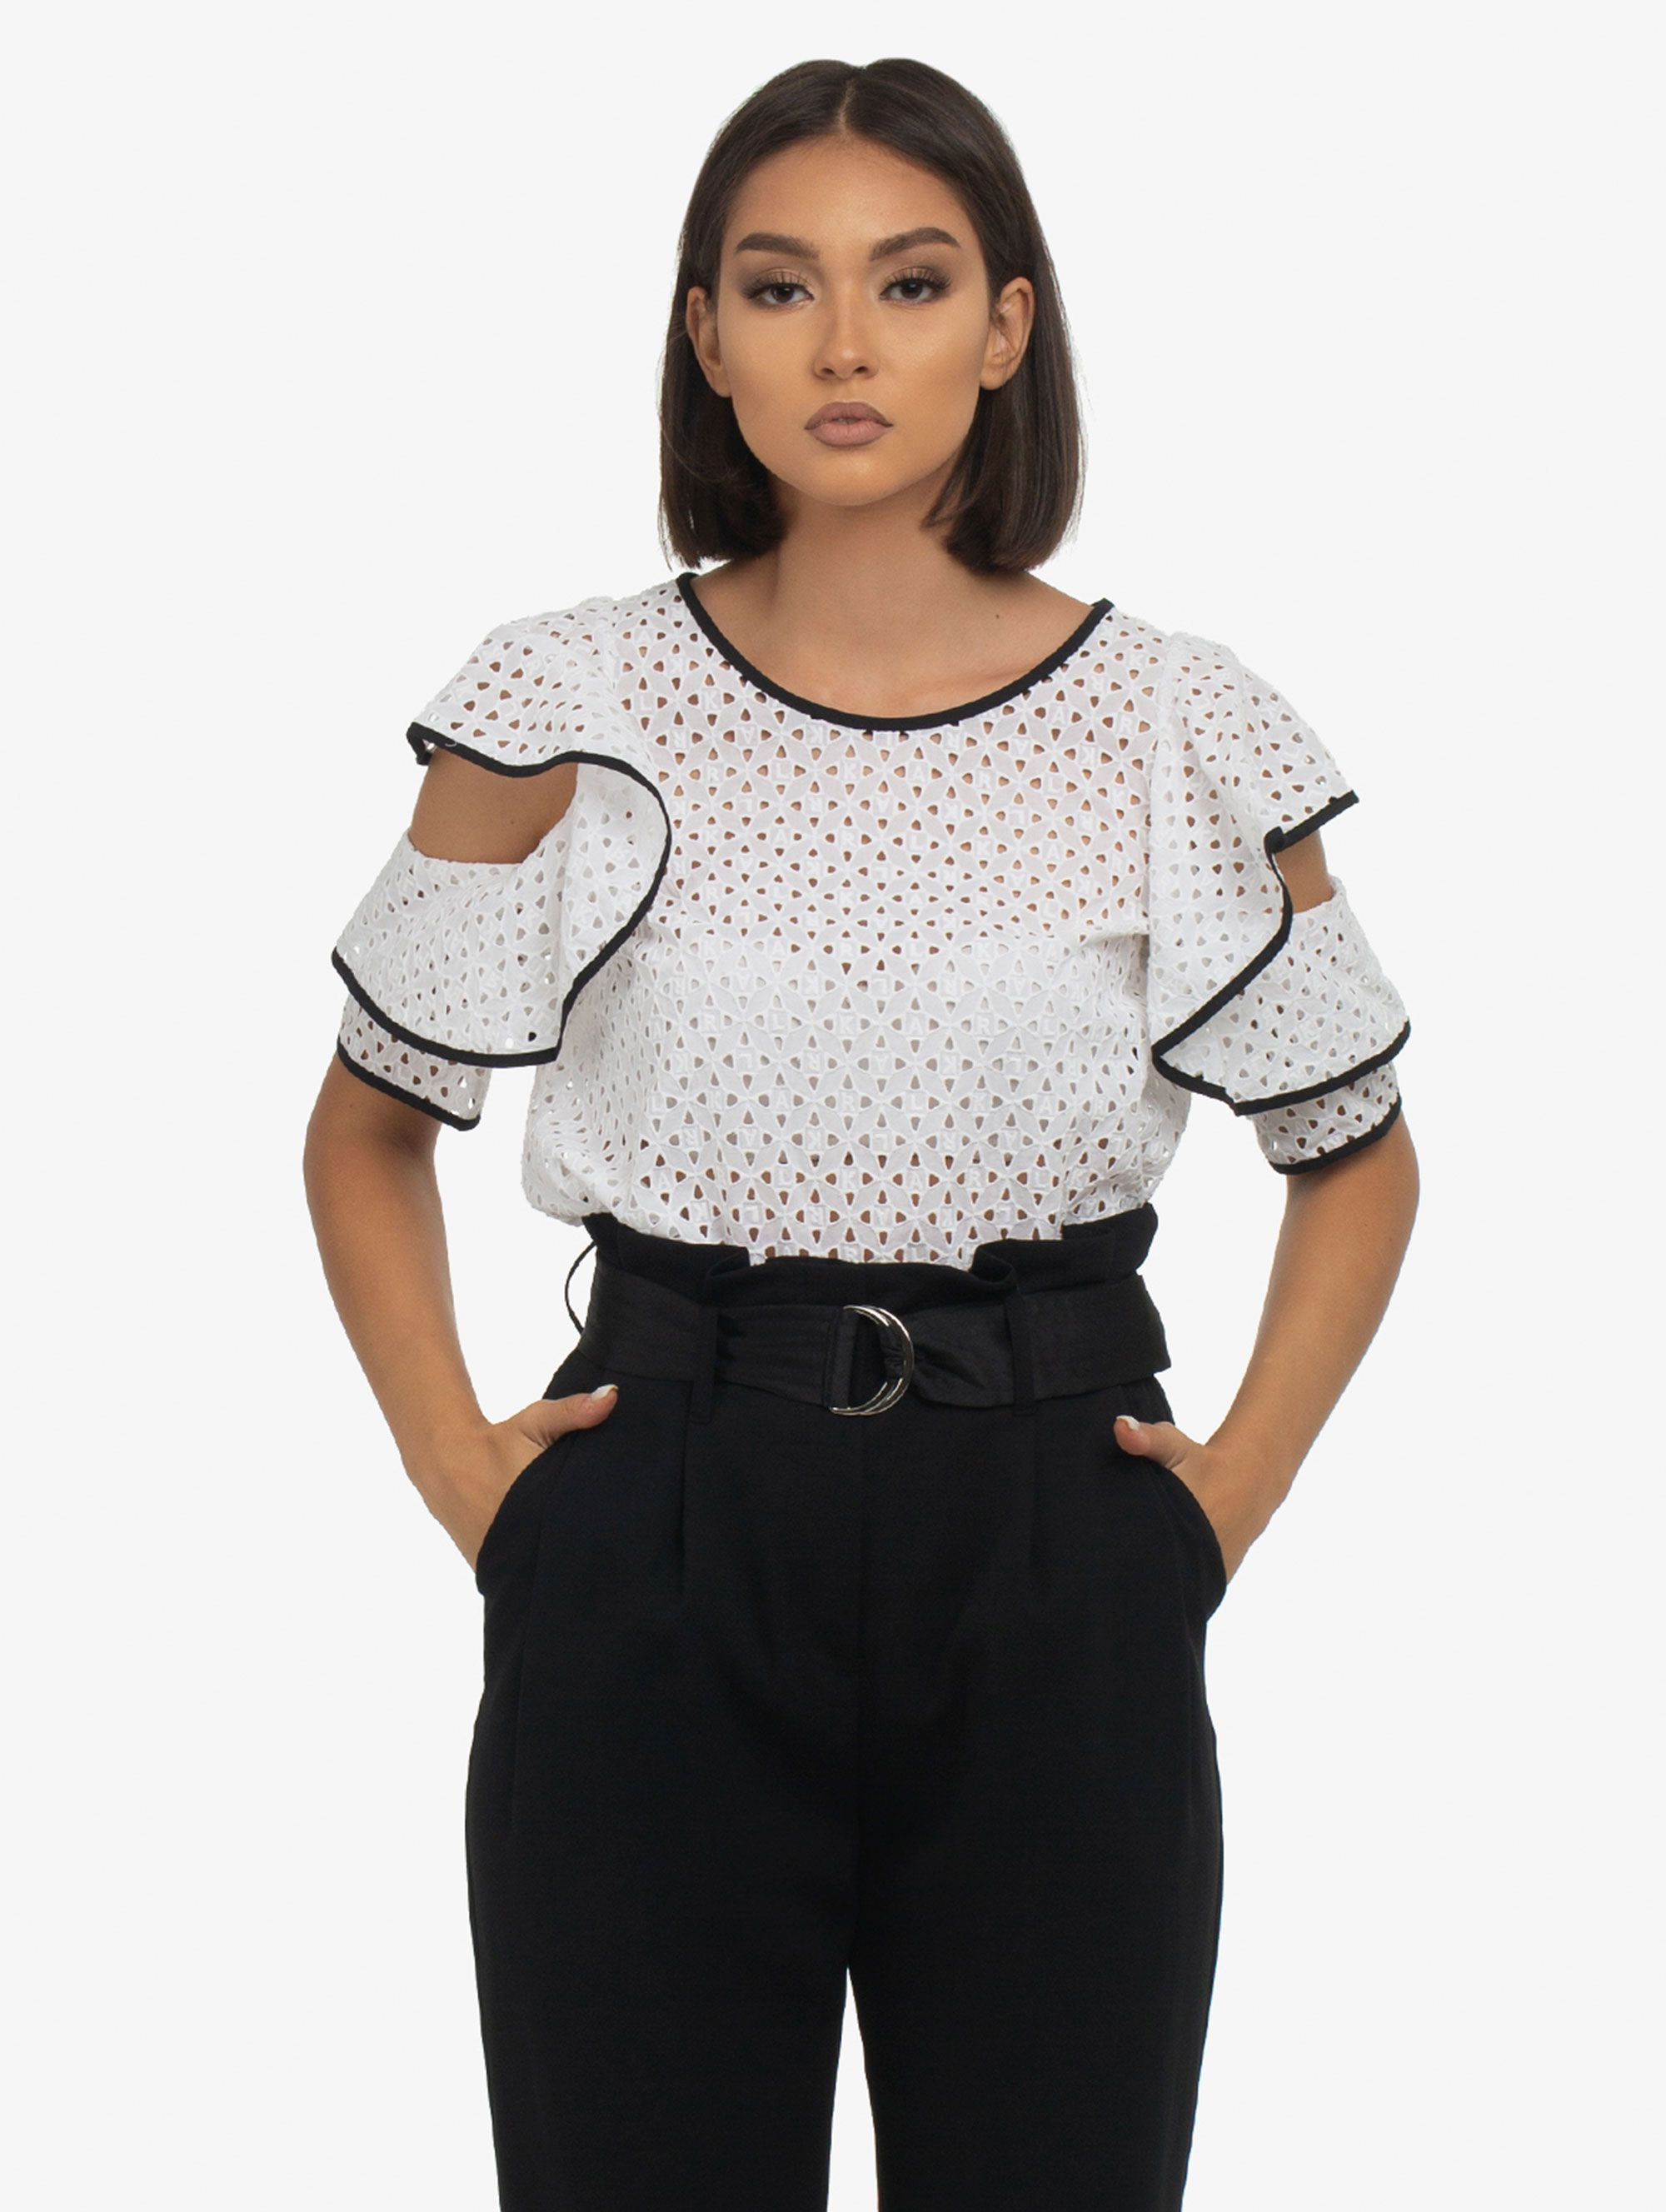 Karl Lagerfeld Broderie Anglaise Top in White